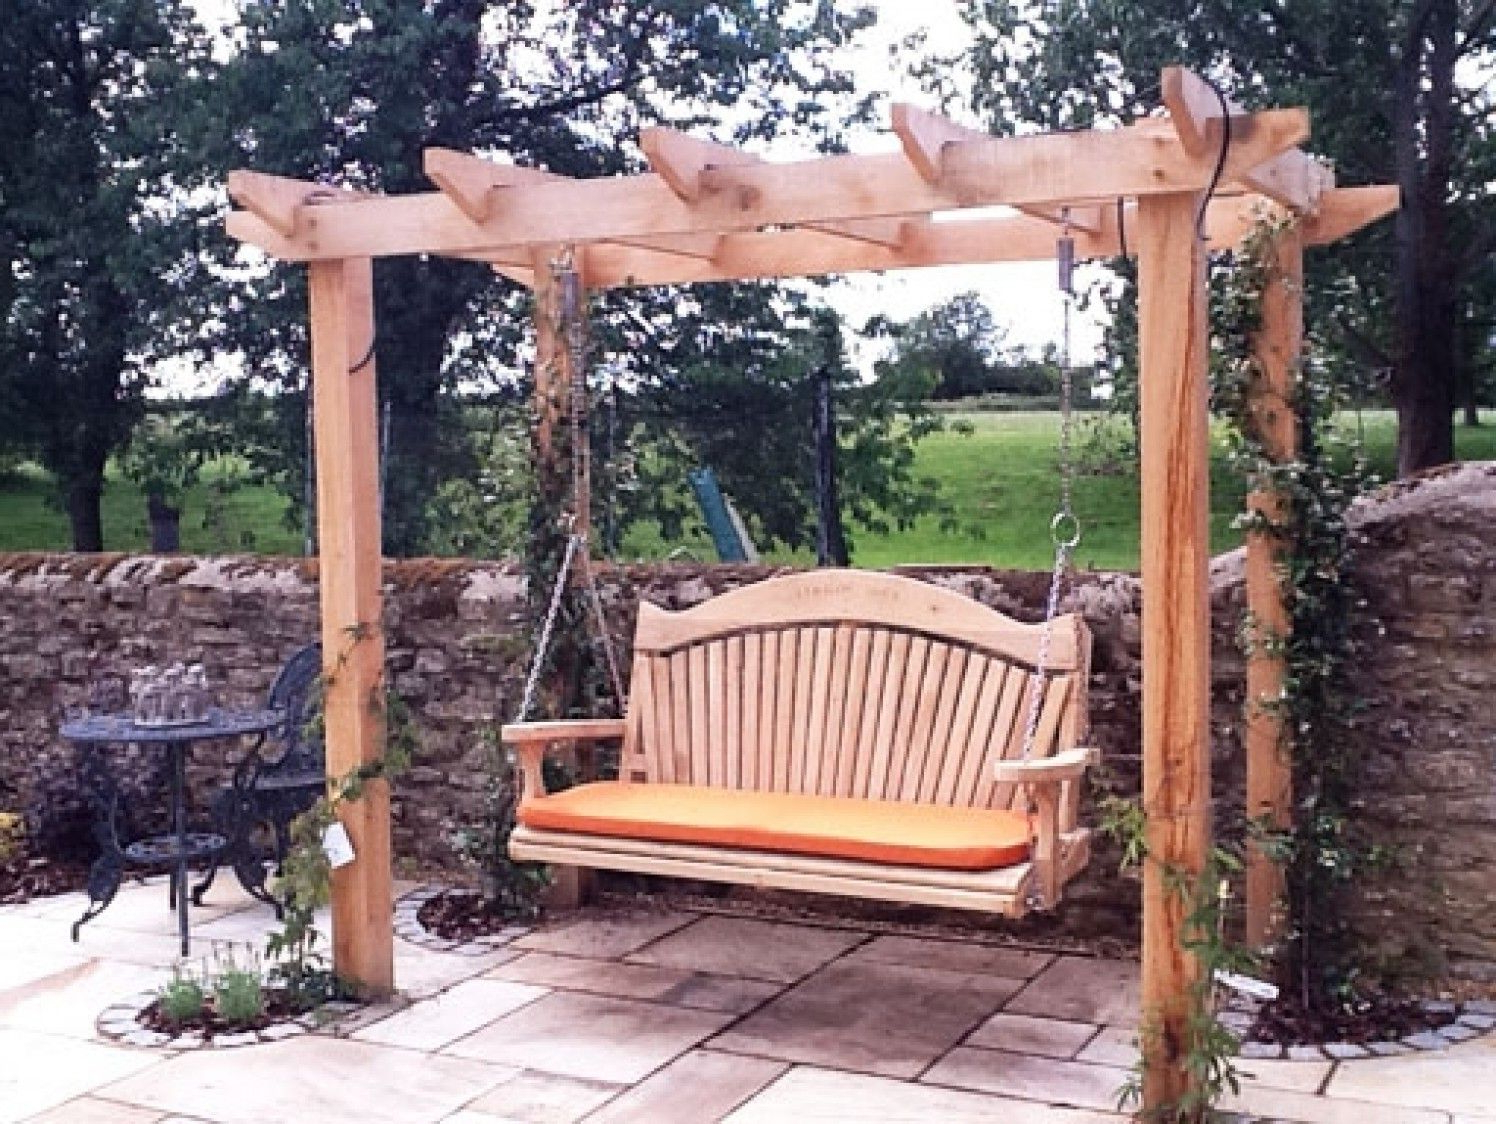 3 Seat Pergola Swings With Regard To Well Liked Quality Wooden Swing Seat And Pergola (Gallery 12 of 30)